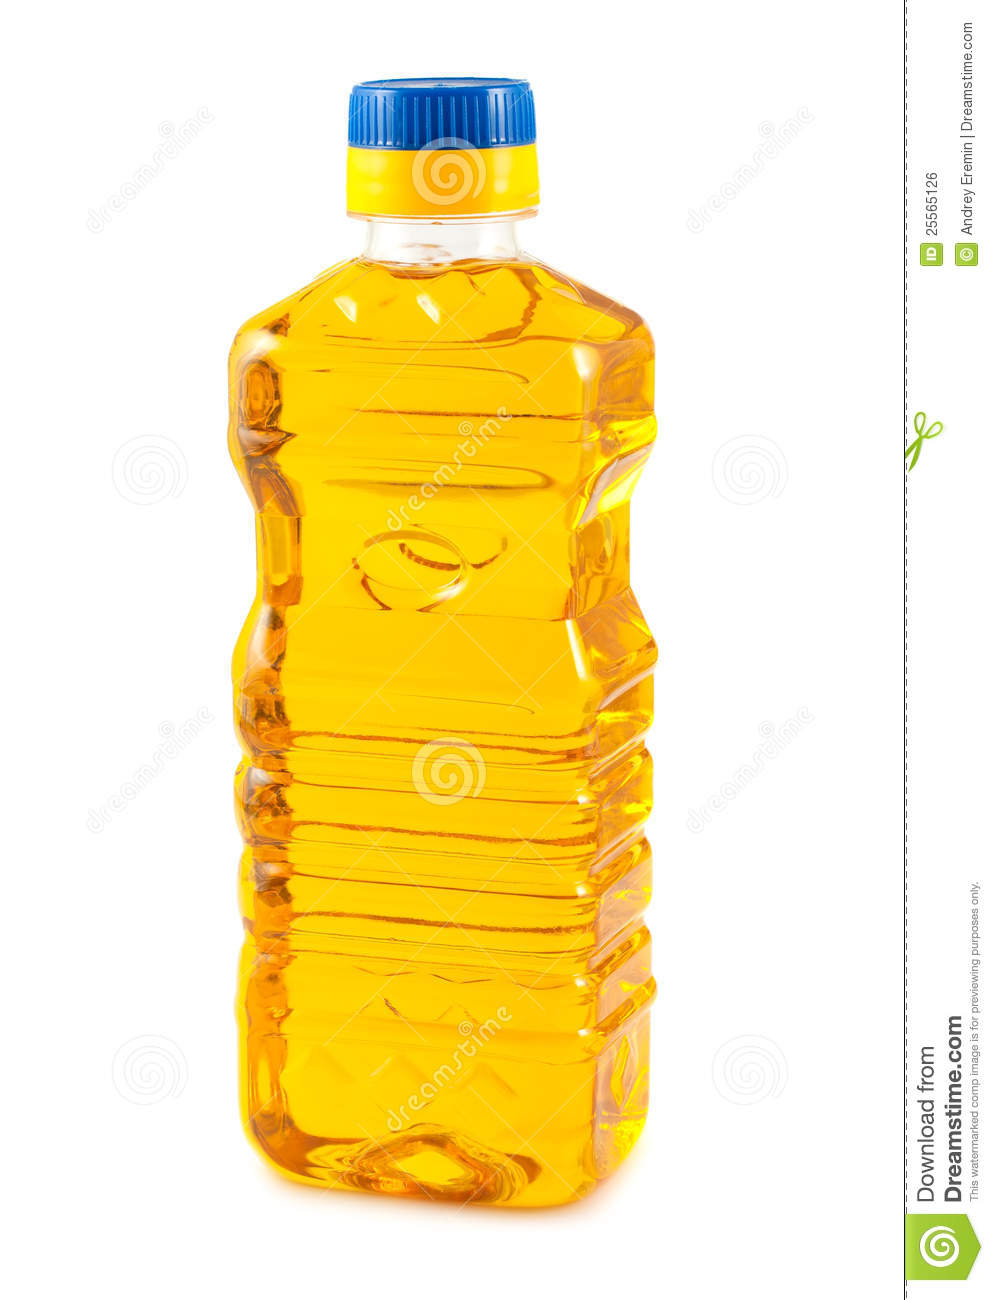 Vegetable Oil In Plastic Bottle Royalty Free Stock Image   Image